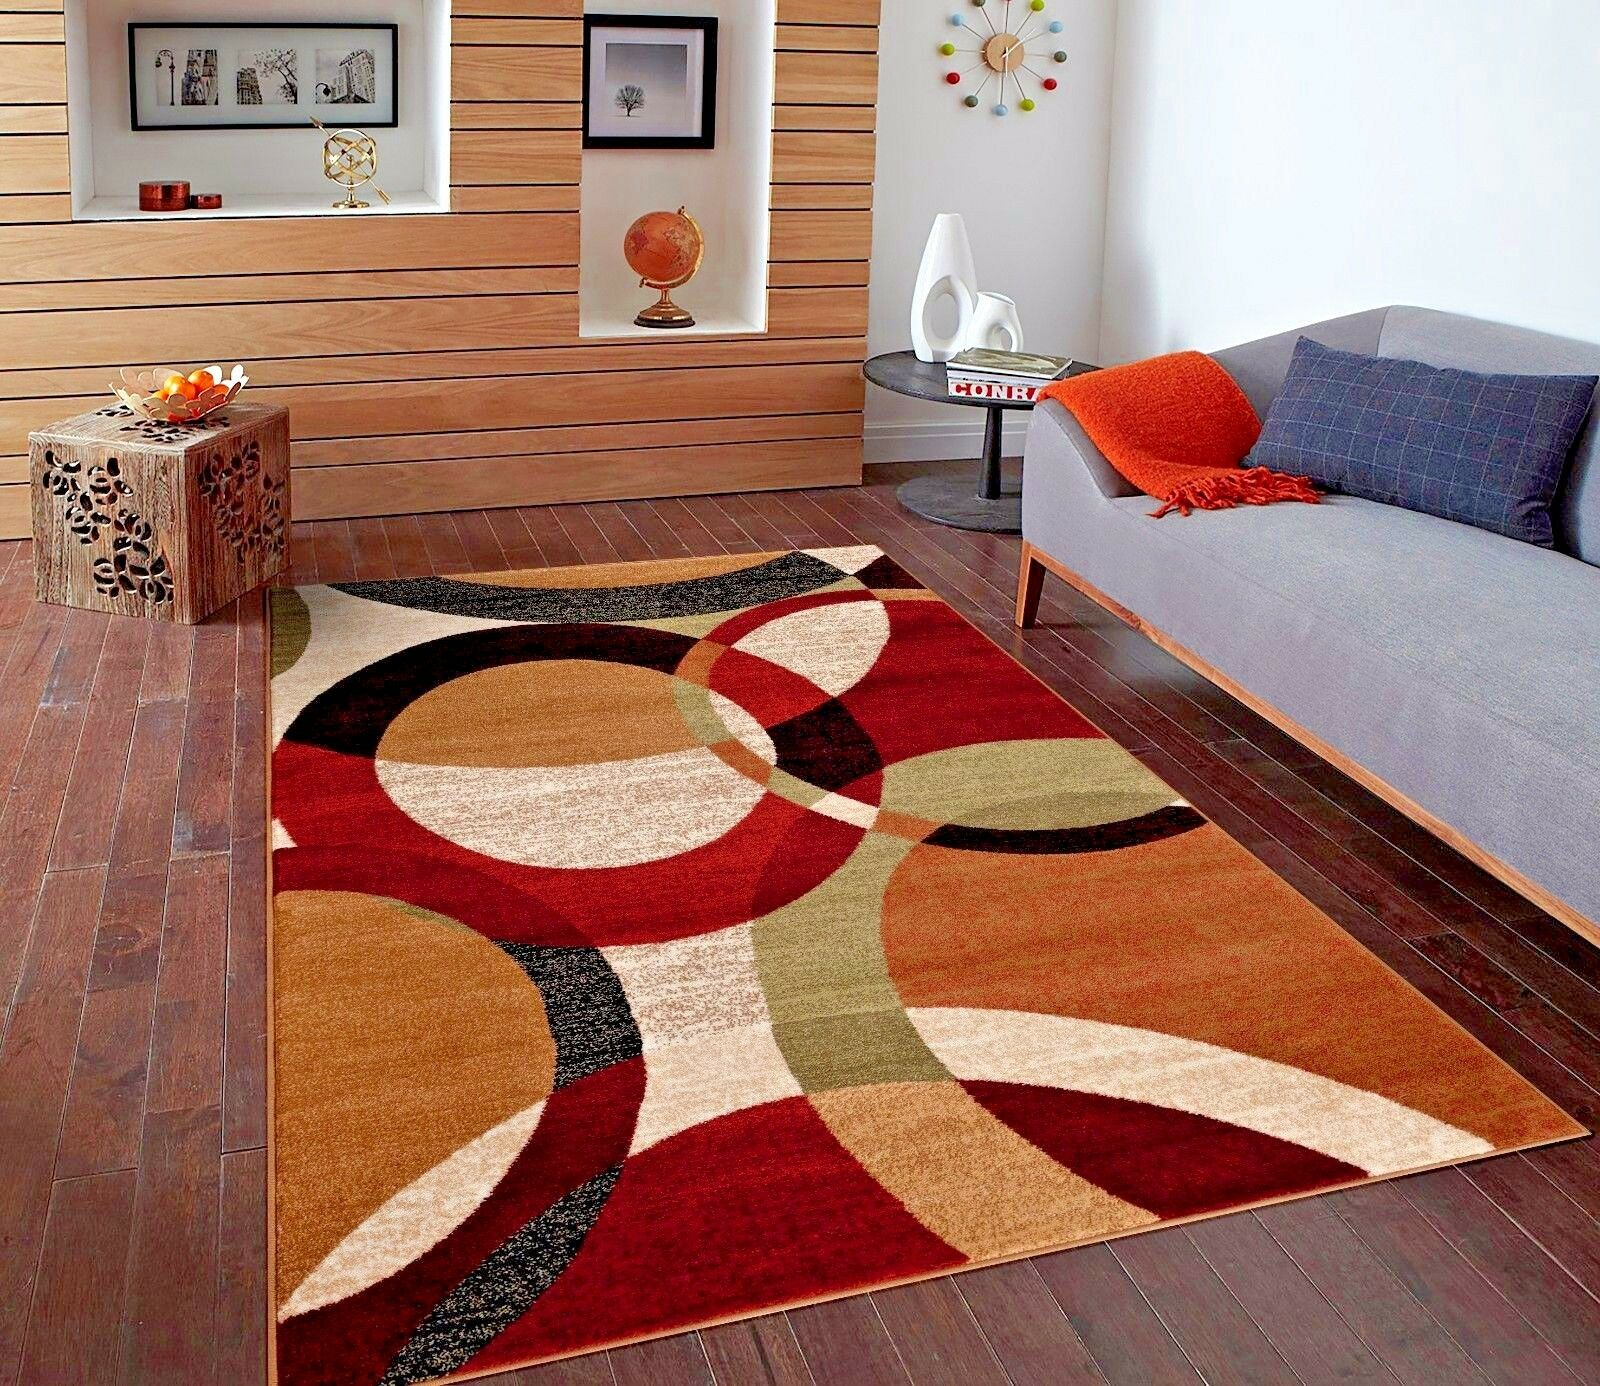 Big Living Room Rugs : RUGS AREA RUGS 8X10 AREA RUG CARPET MODERN RUGS LARGE AREA ...